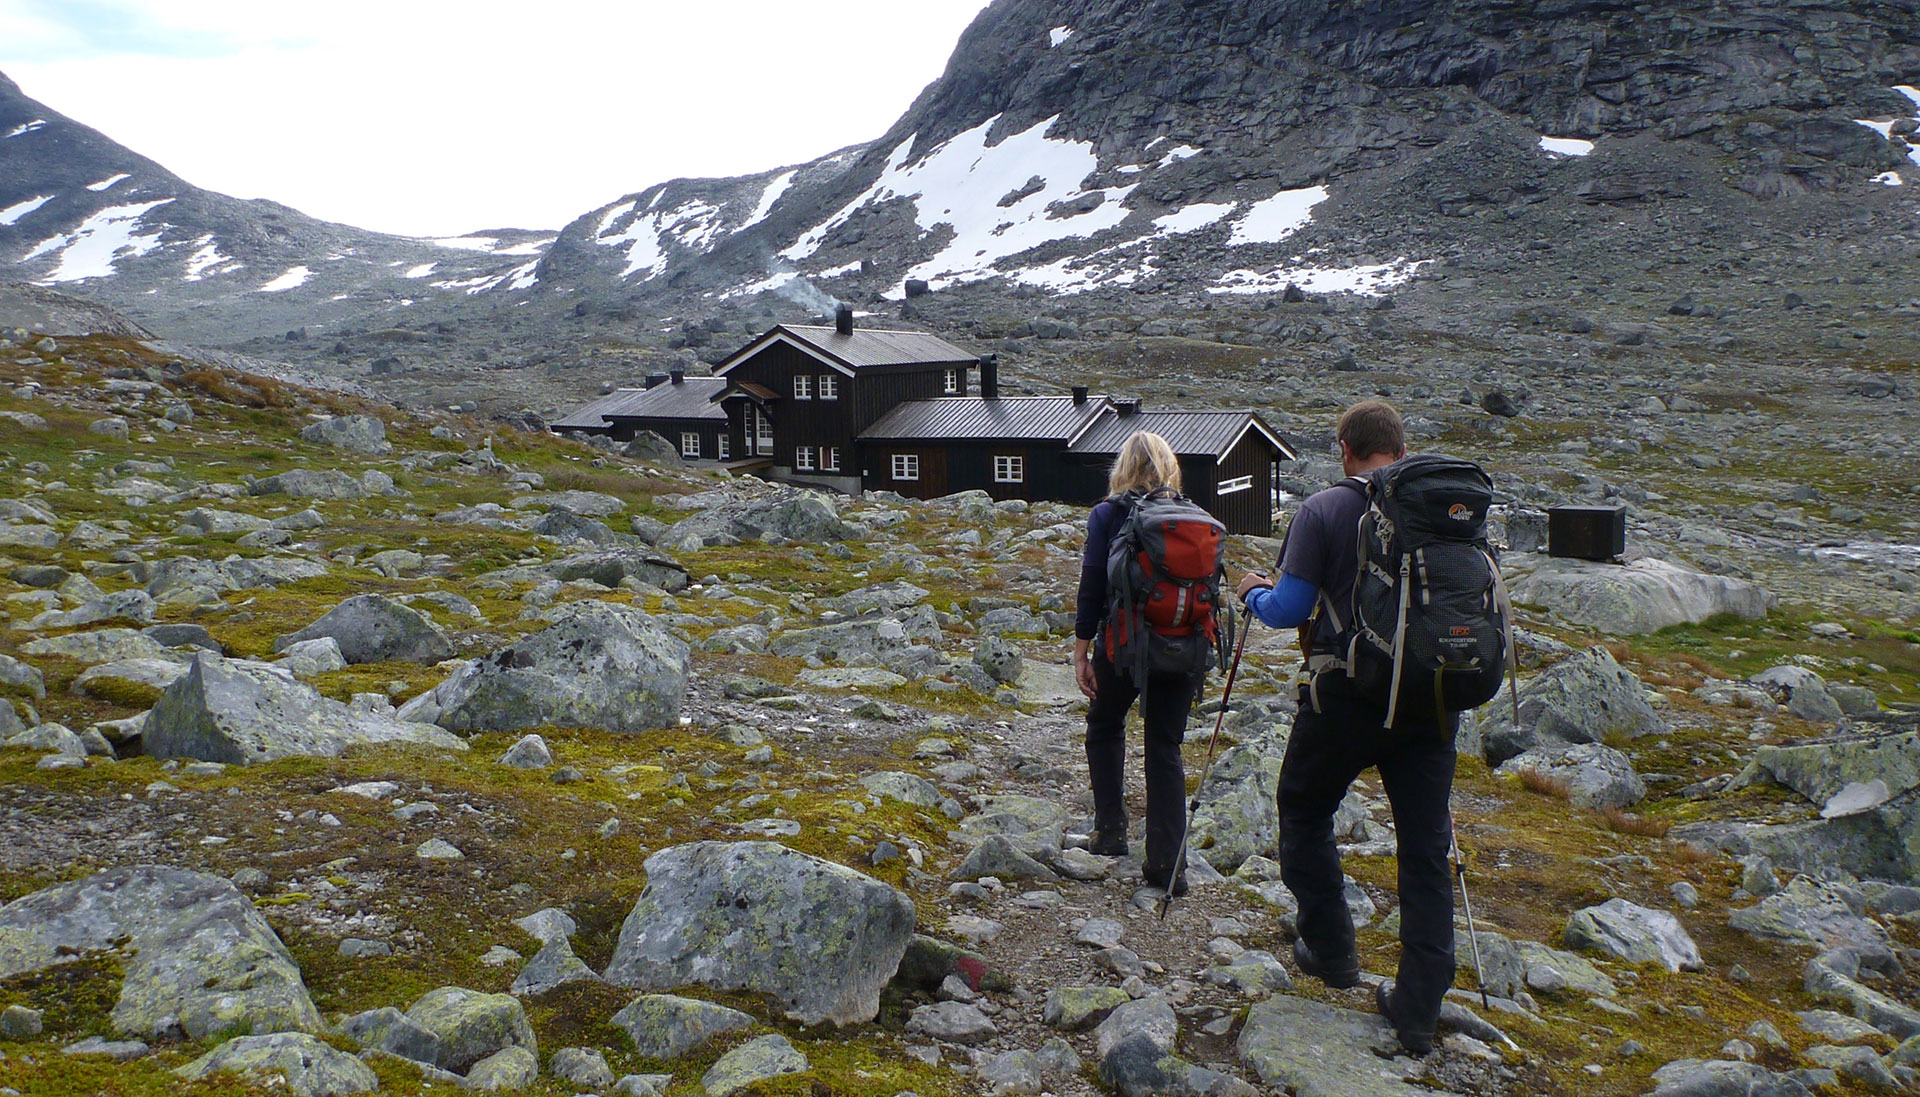 People hiking to Olavsbu.